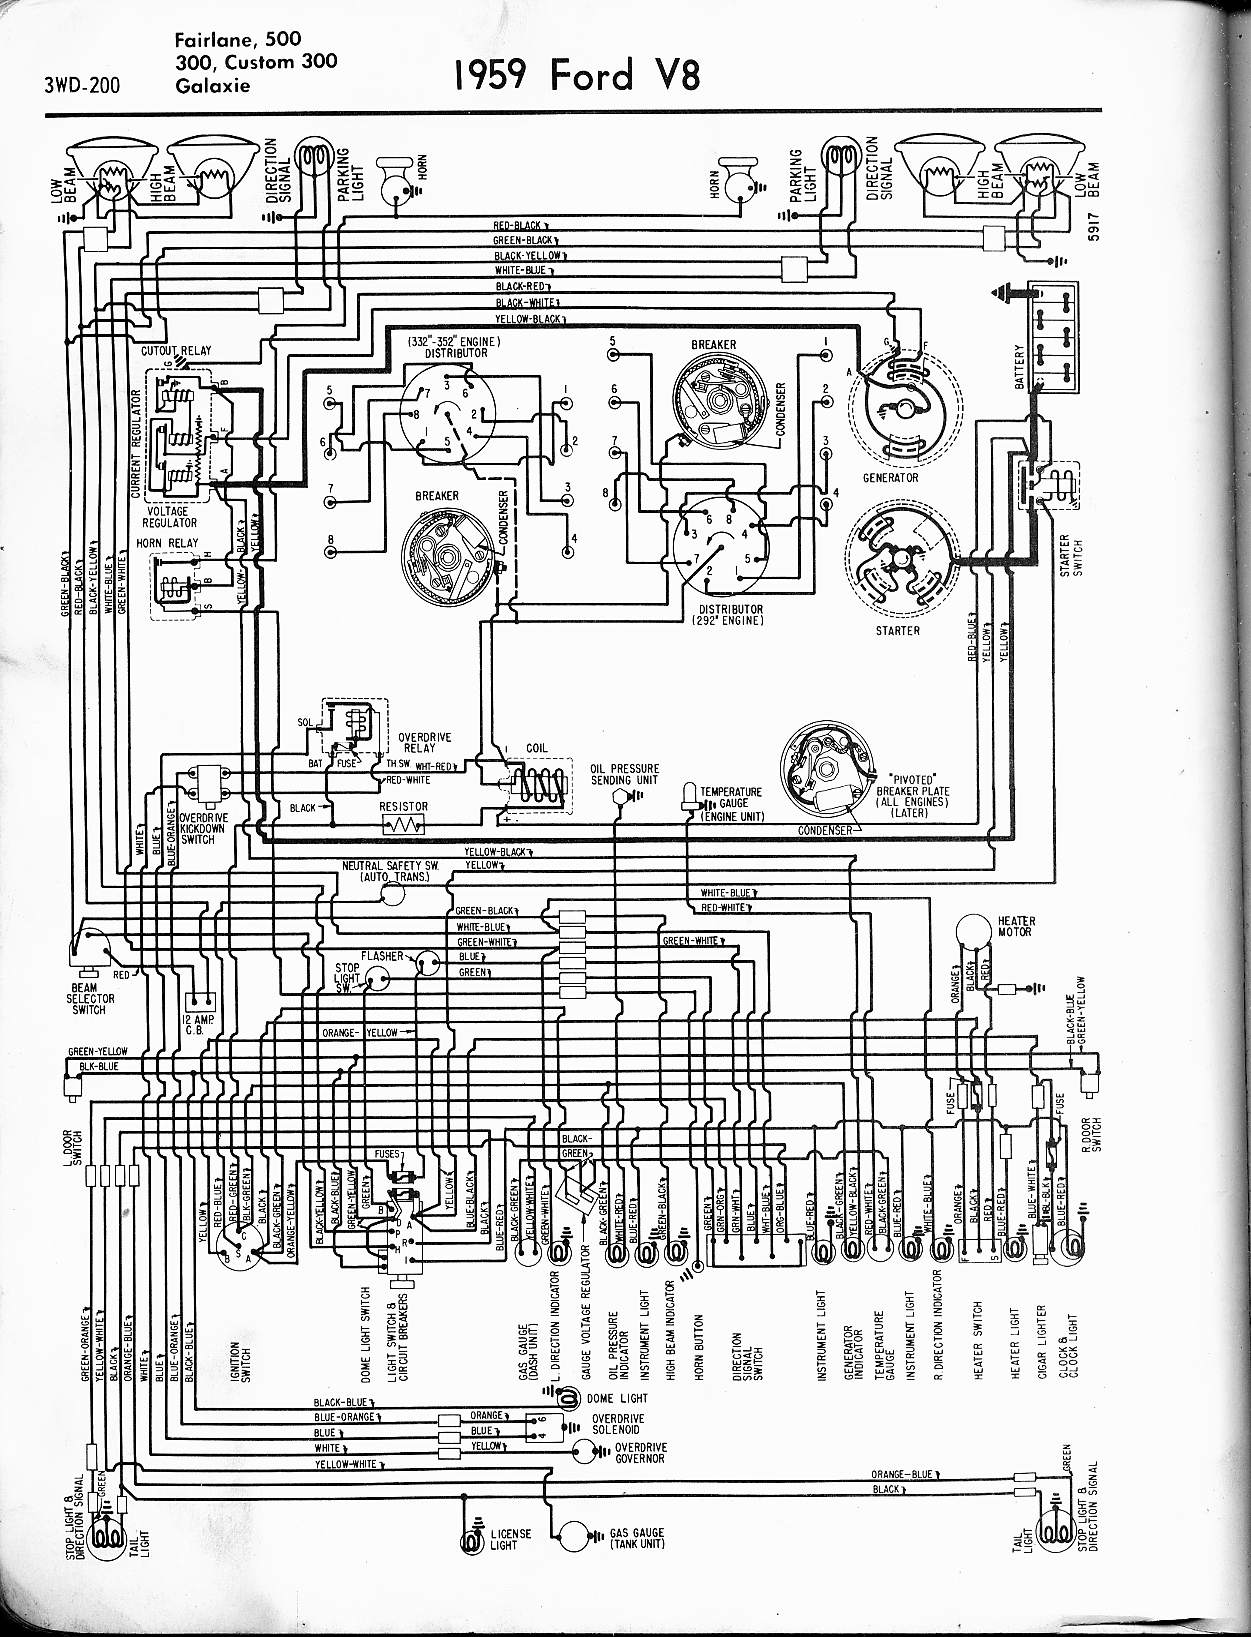 MWire5765 200 57 65 ford wiring diagrams ford wiring schematics at edmiracle.co